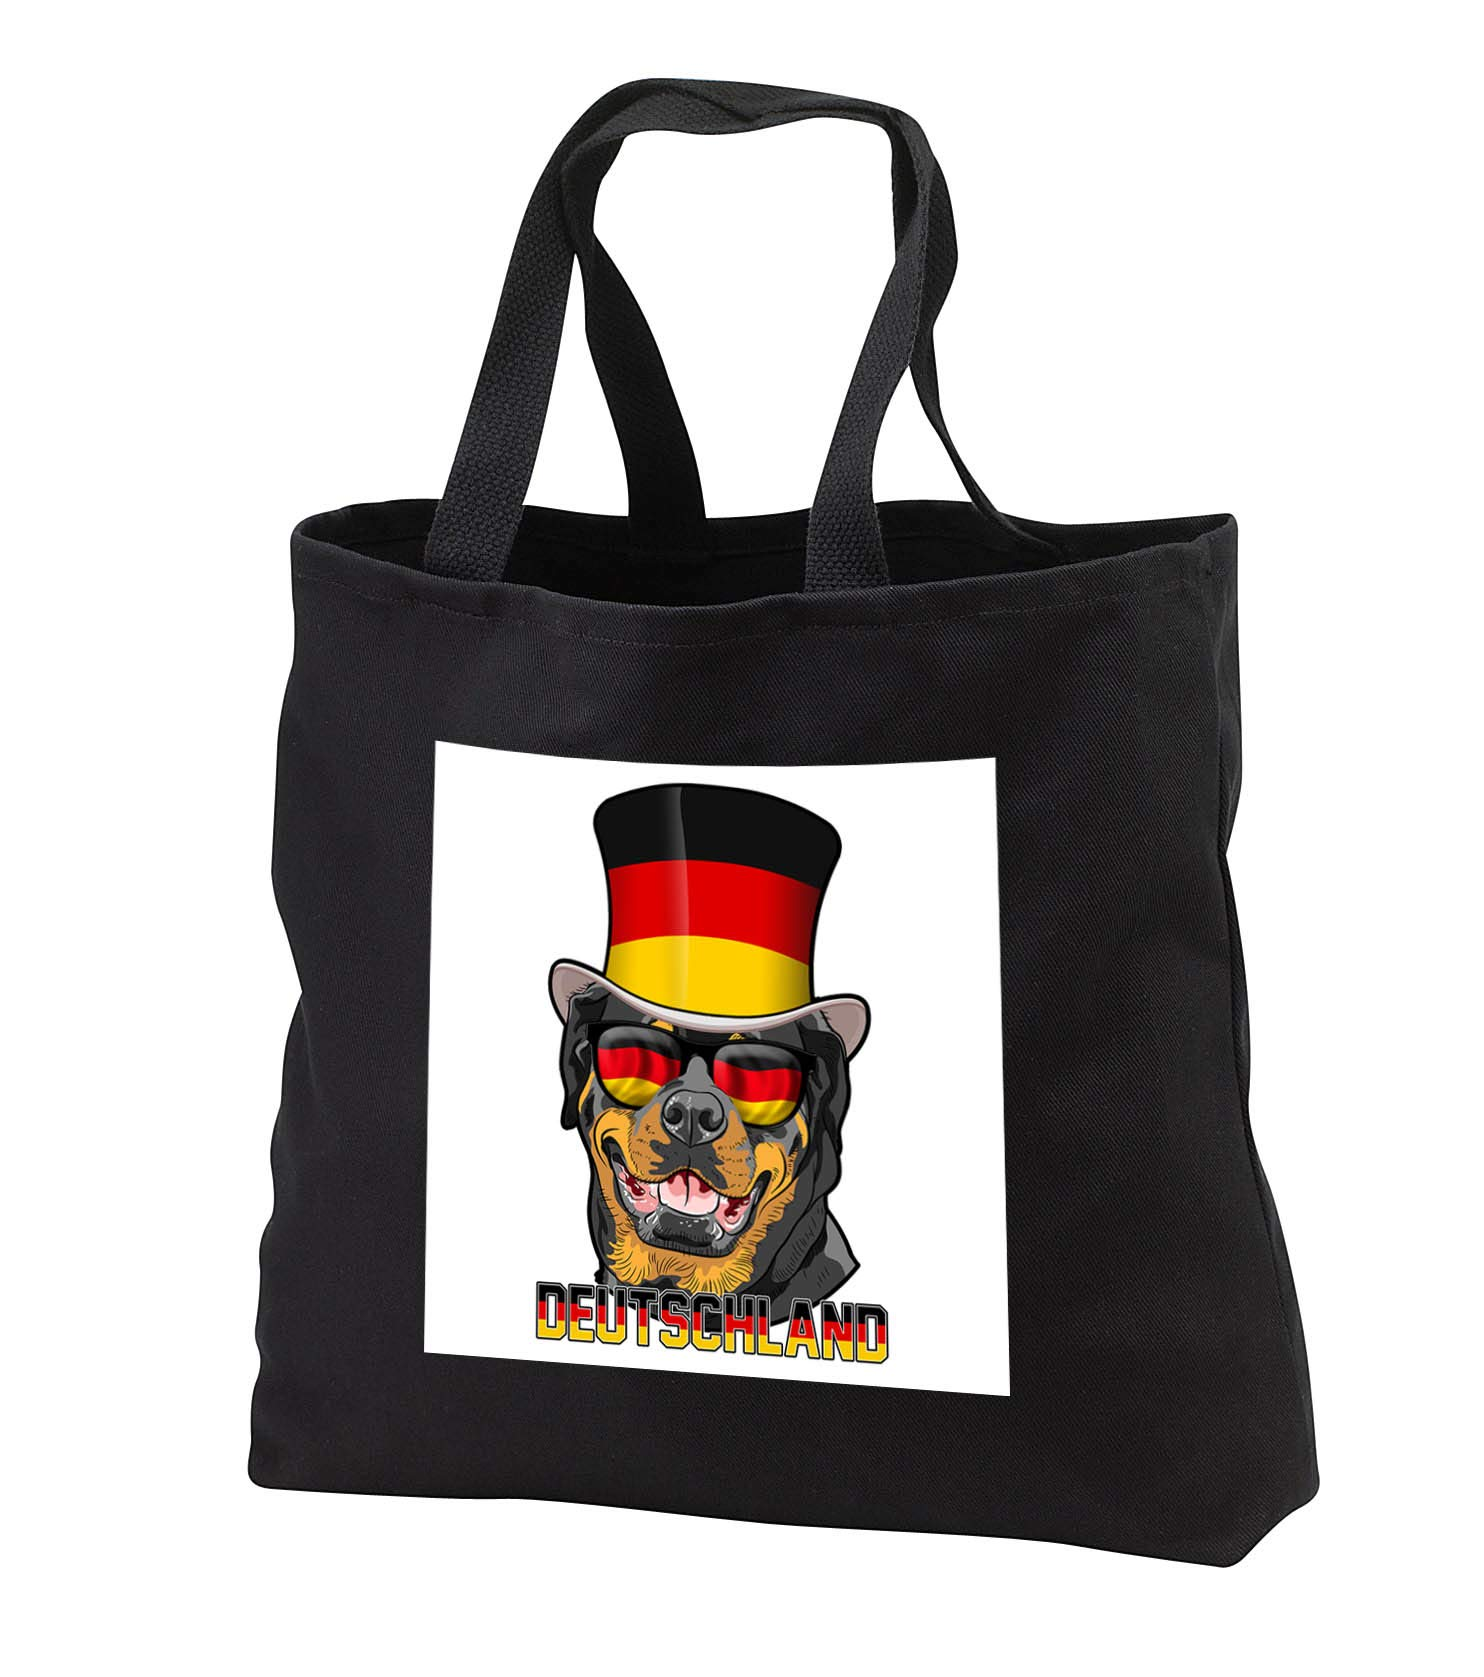 Carsten Reisinger - Illustrations - Germany Rottweiler Dog with German Flag Top Hat and Sunglasses - Tote Bags - Black Tote Bag 14w x 14h x 3d (tb_293421_1)